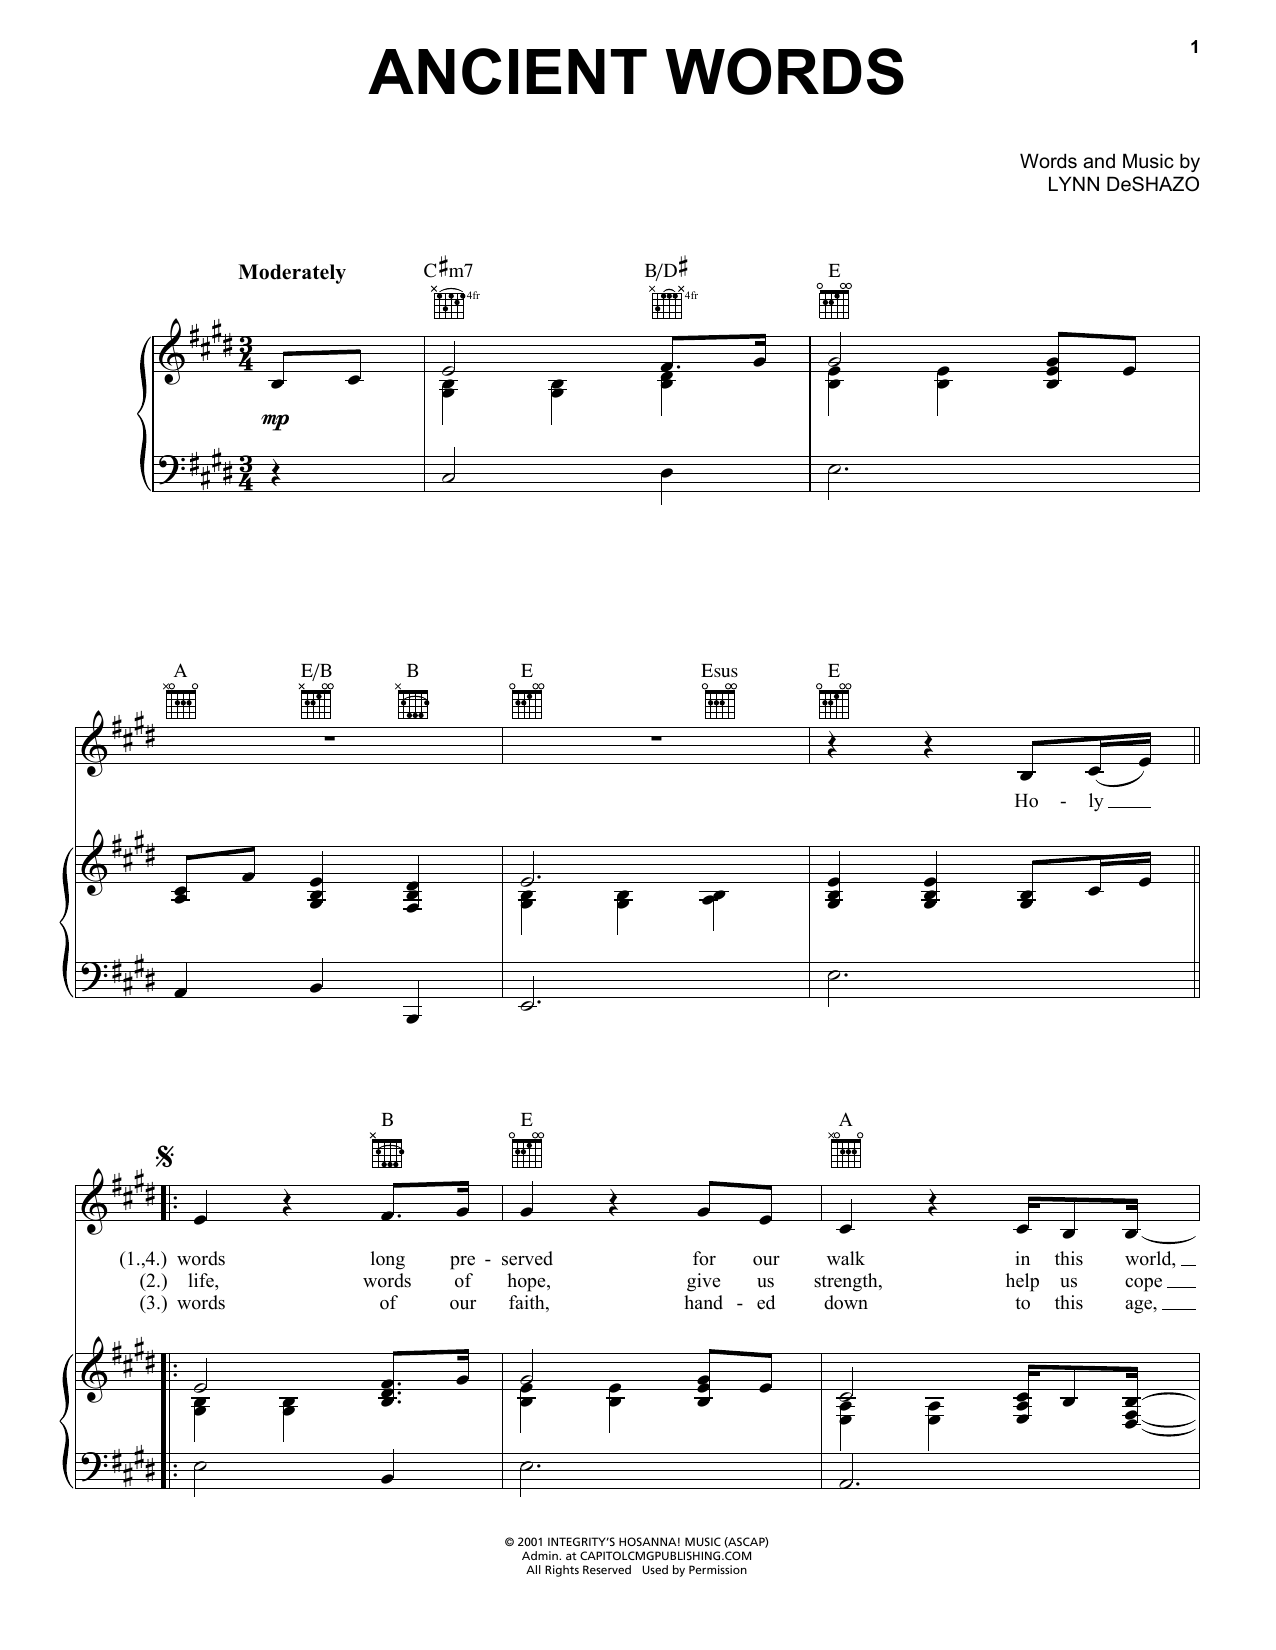 Lynn DeShazo Ancient Words sheet music notes and chords. Download Printable PDF.